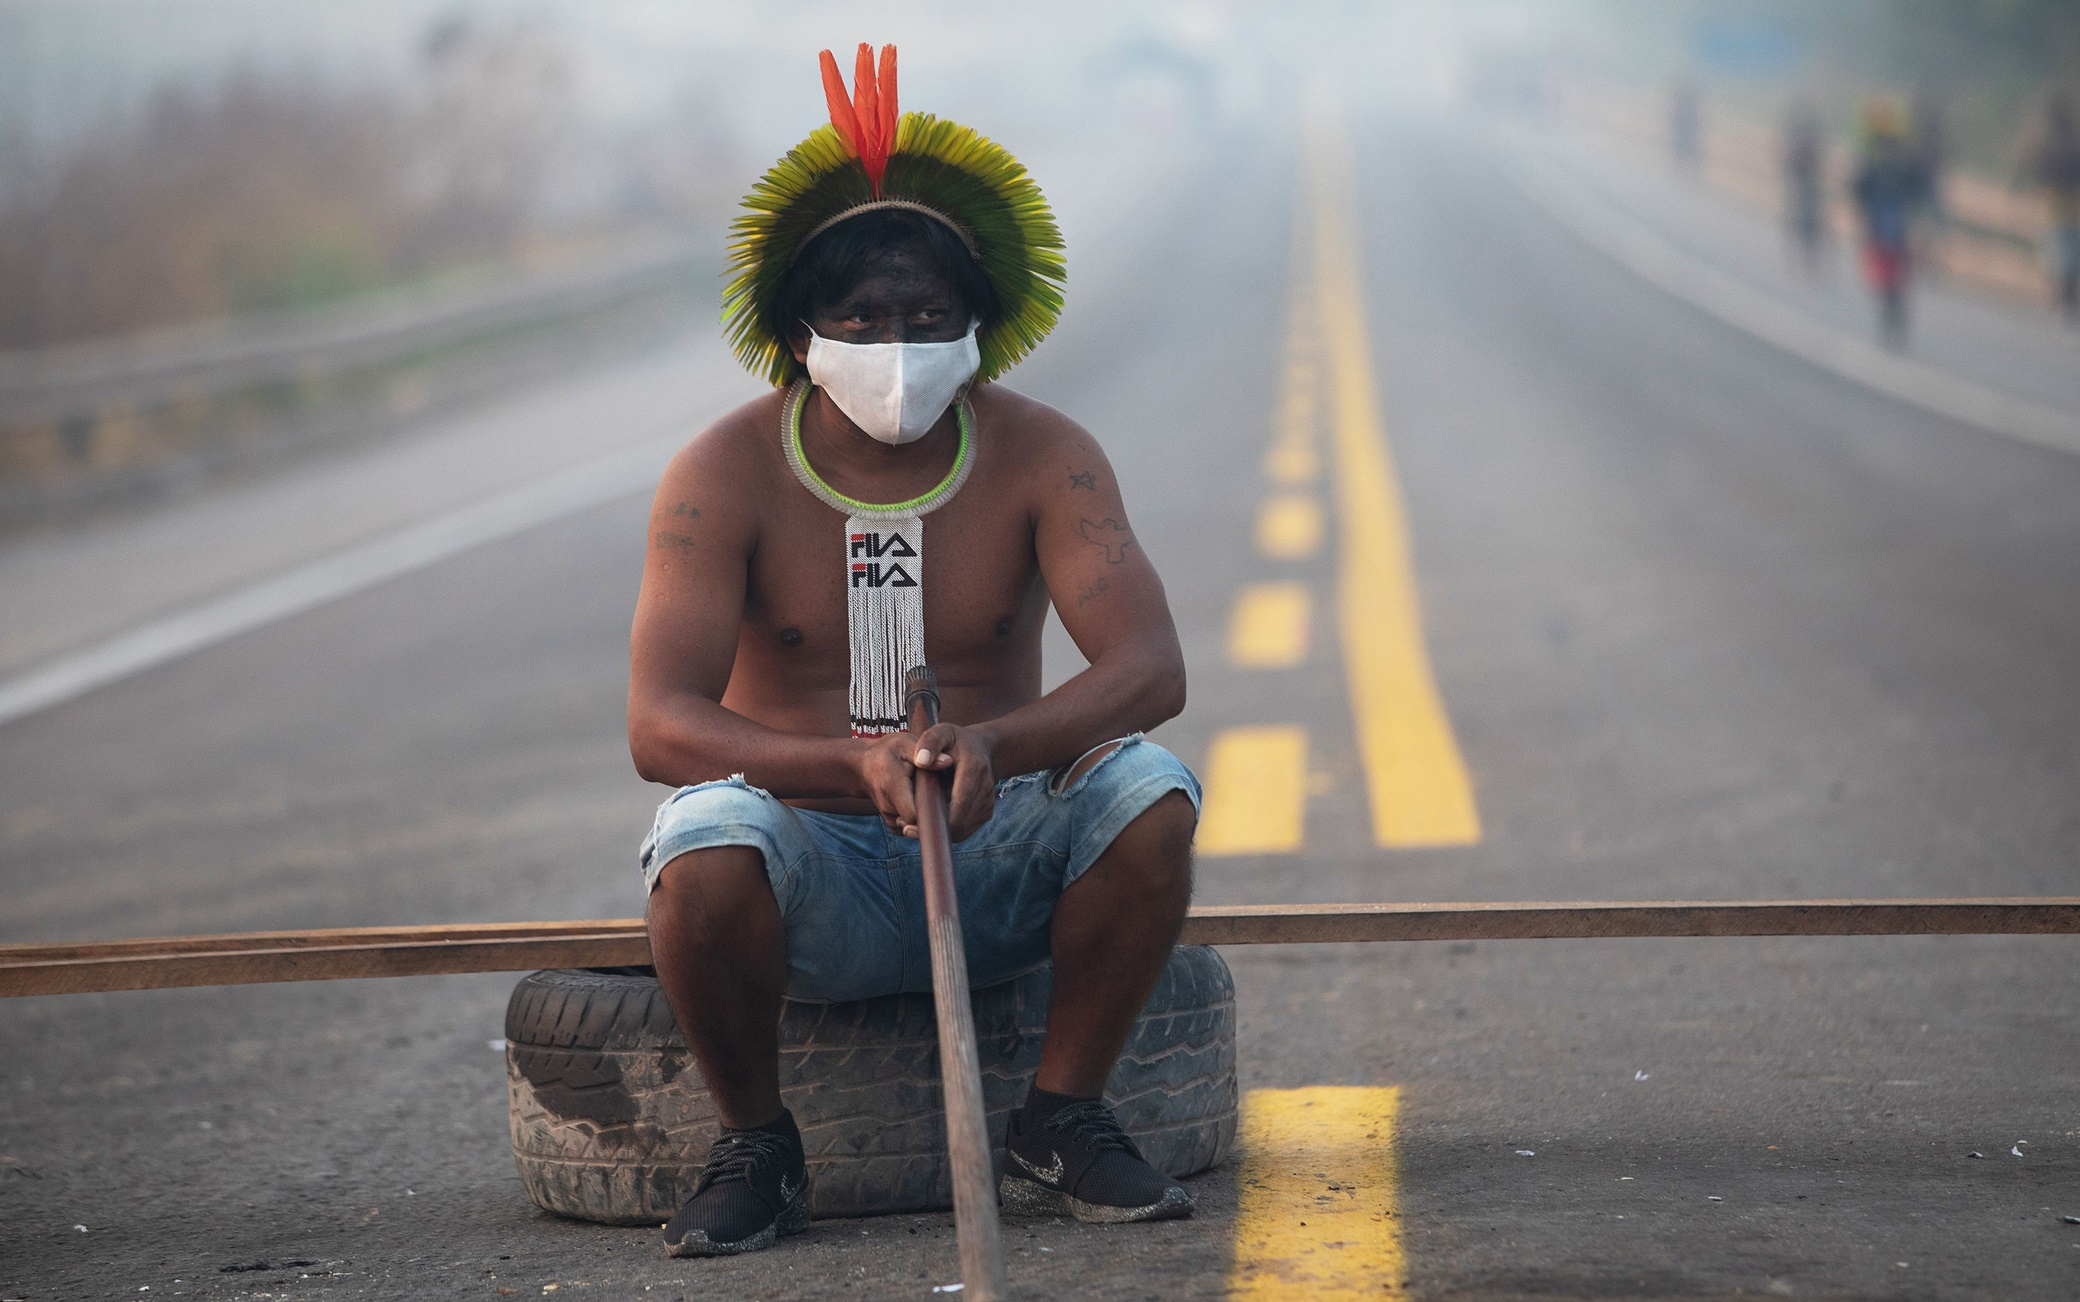 TOPSHOT - A member of the Kayapo tribe sits after they blocked highway BR163 during a protest on the outskirts of Novo Progresso in Para State, Brazil, on August 18, 2020 amid the COVID-19 novel coronavirus pandemic. - Brandishing bows and arrows, dozens of indigenous protesters blocked a main highway through the Brazilian Amazon, demanding help against the new coronavirus and an end to illegal mining and deforestation. (Photo by JOÃ O LAET / AFP) (Photo by JOAO LAET/AFP via Getty Images)